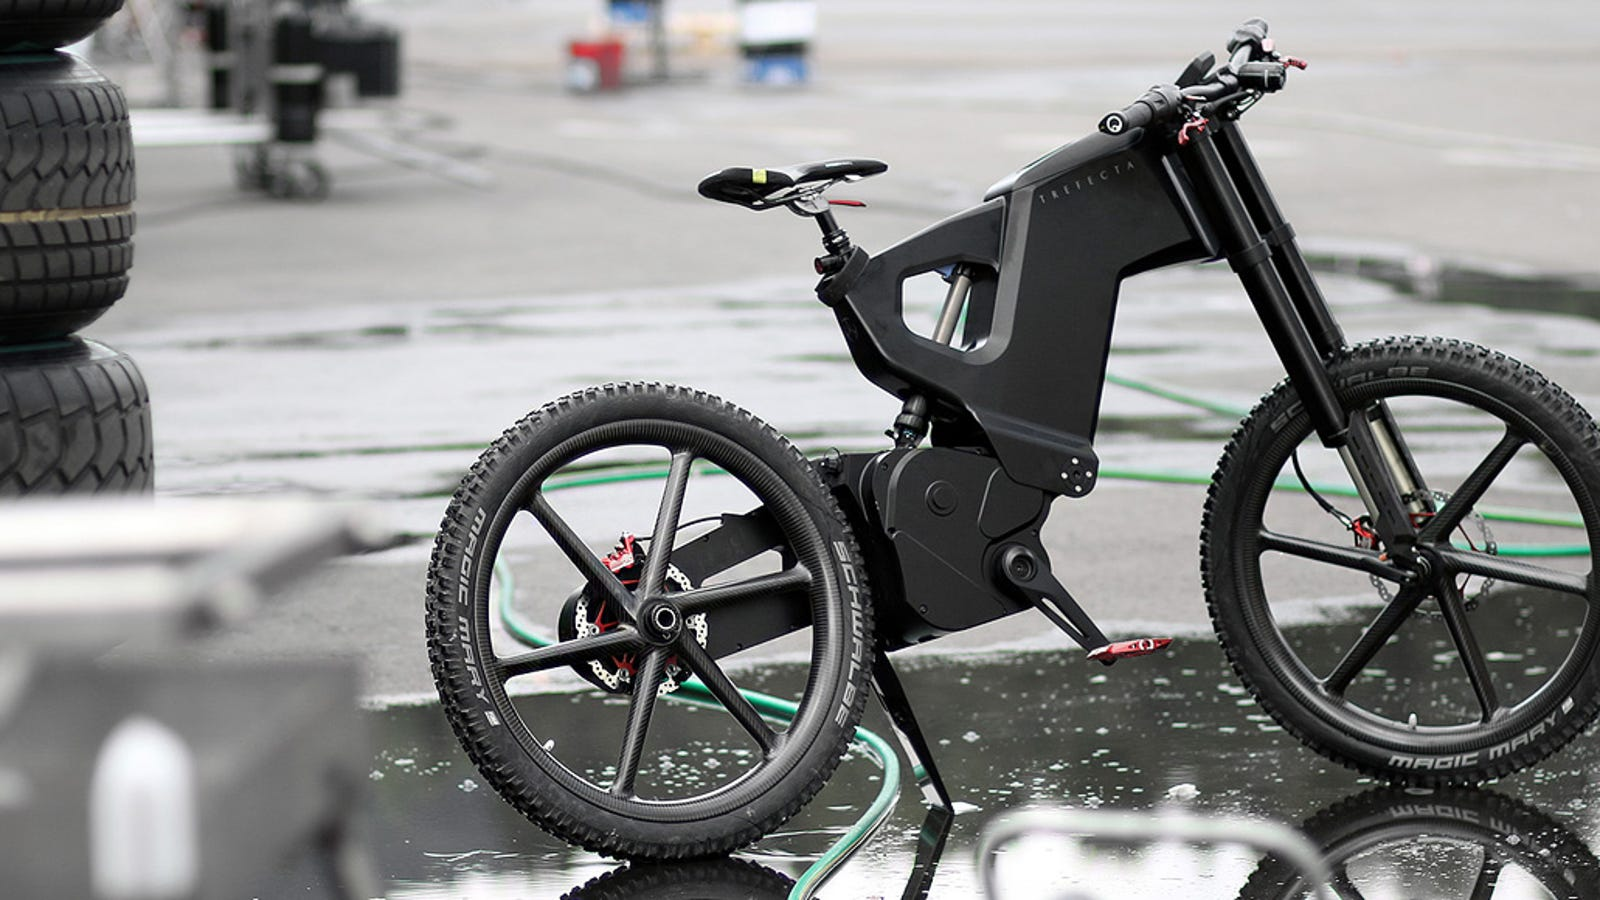 What It S Like To Ride This Incredible E Bike At 40 Miles